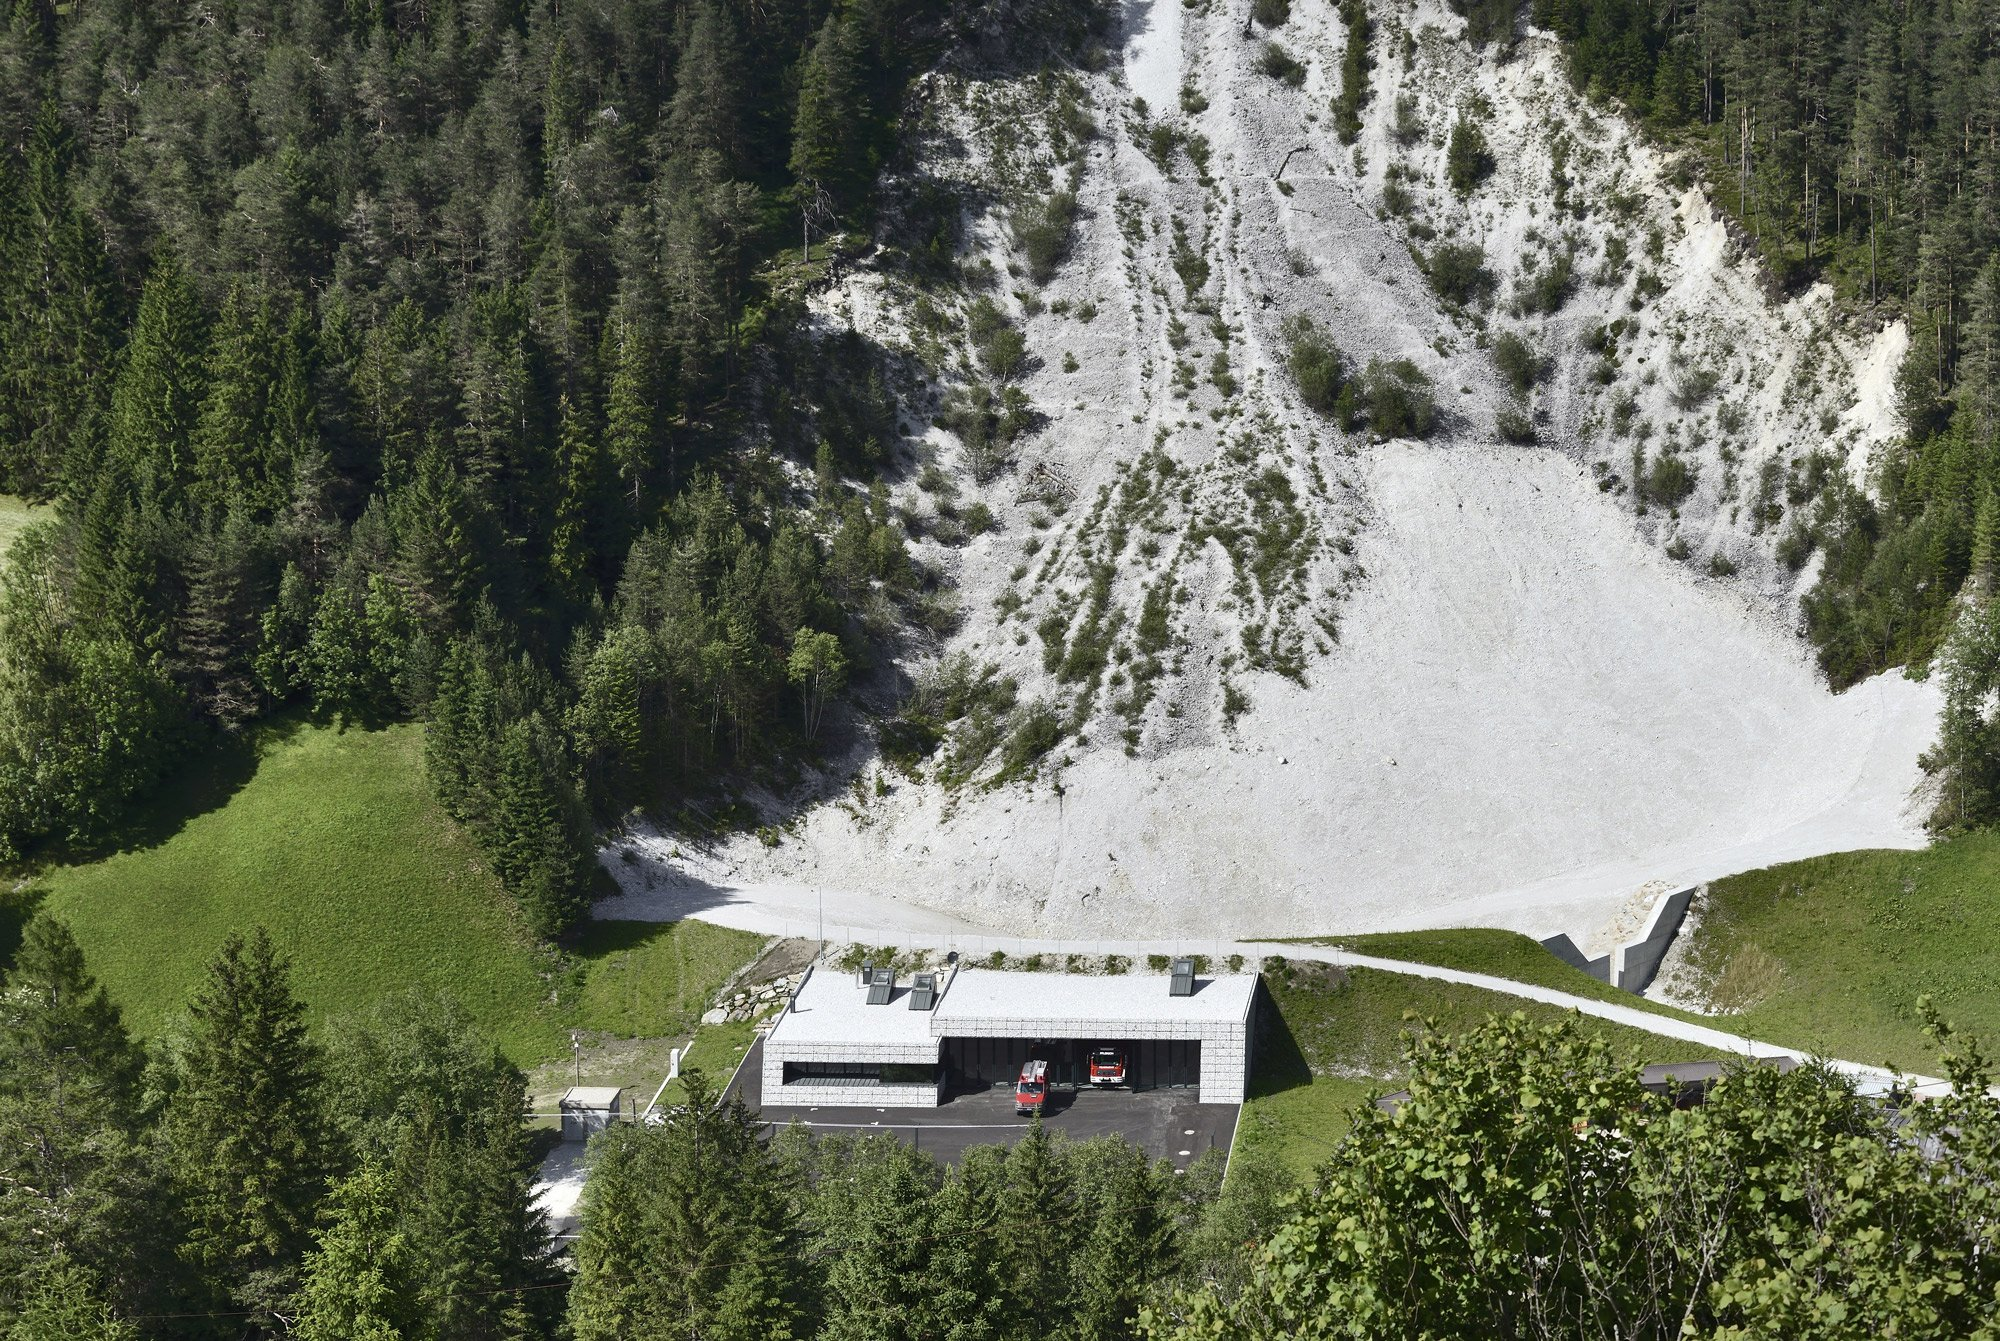 Val di Fleres Fire Station